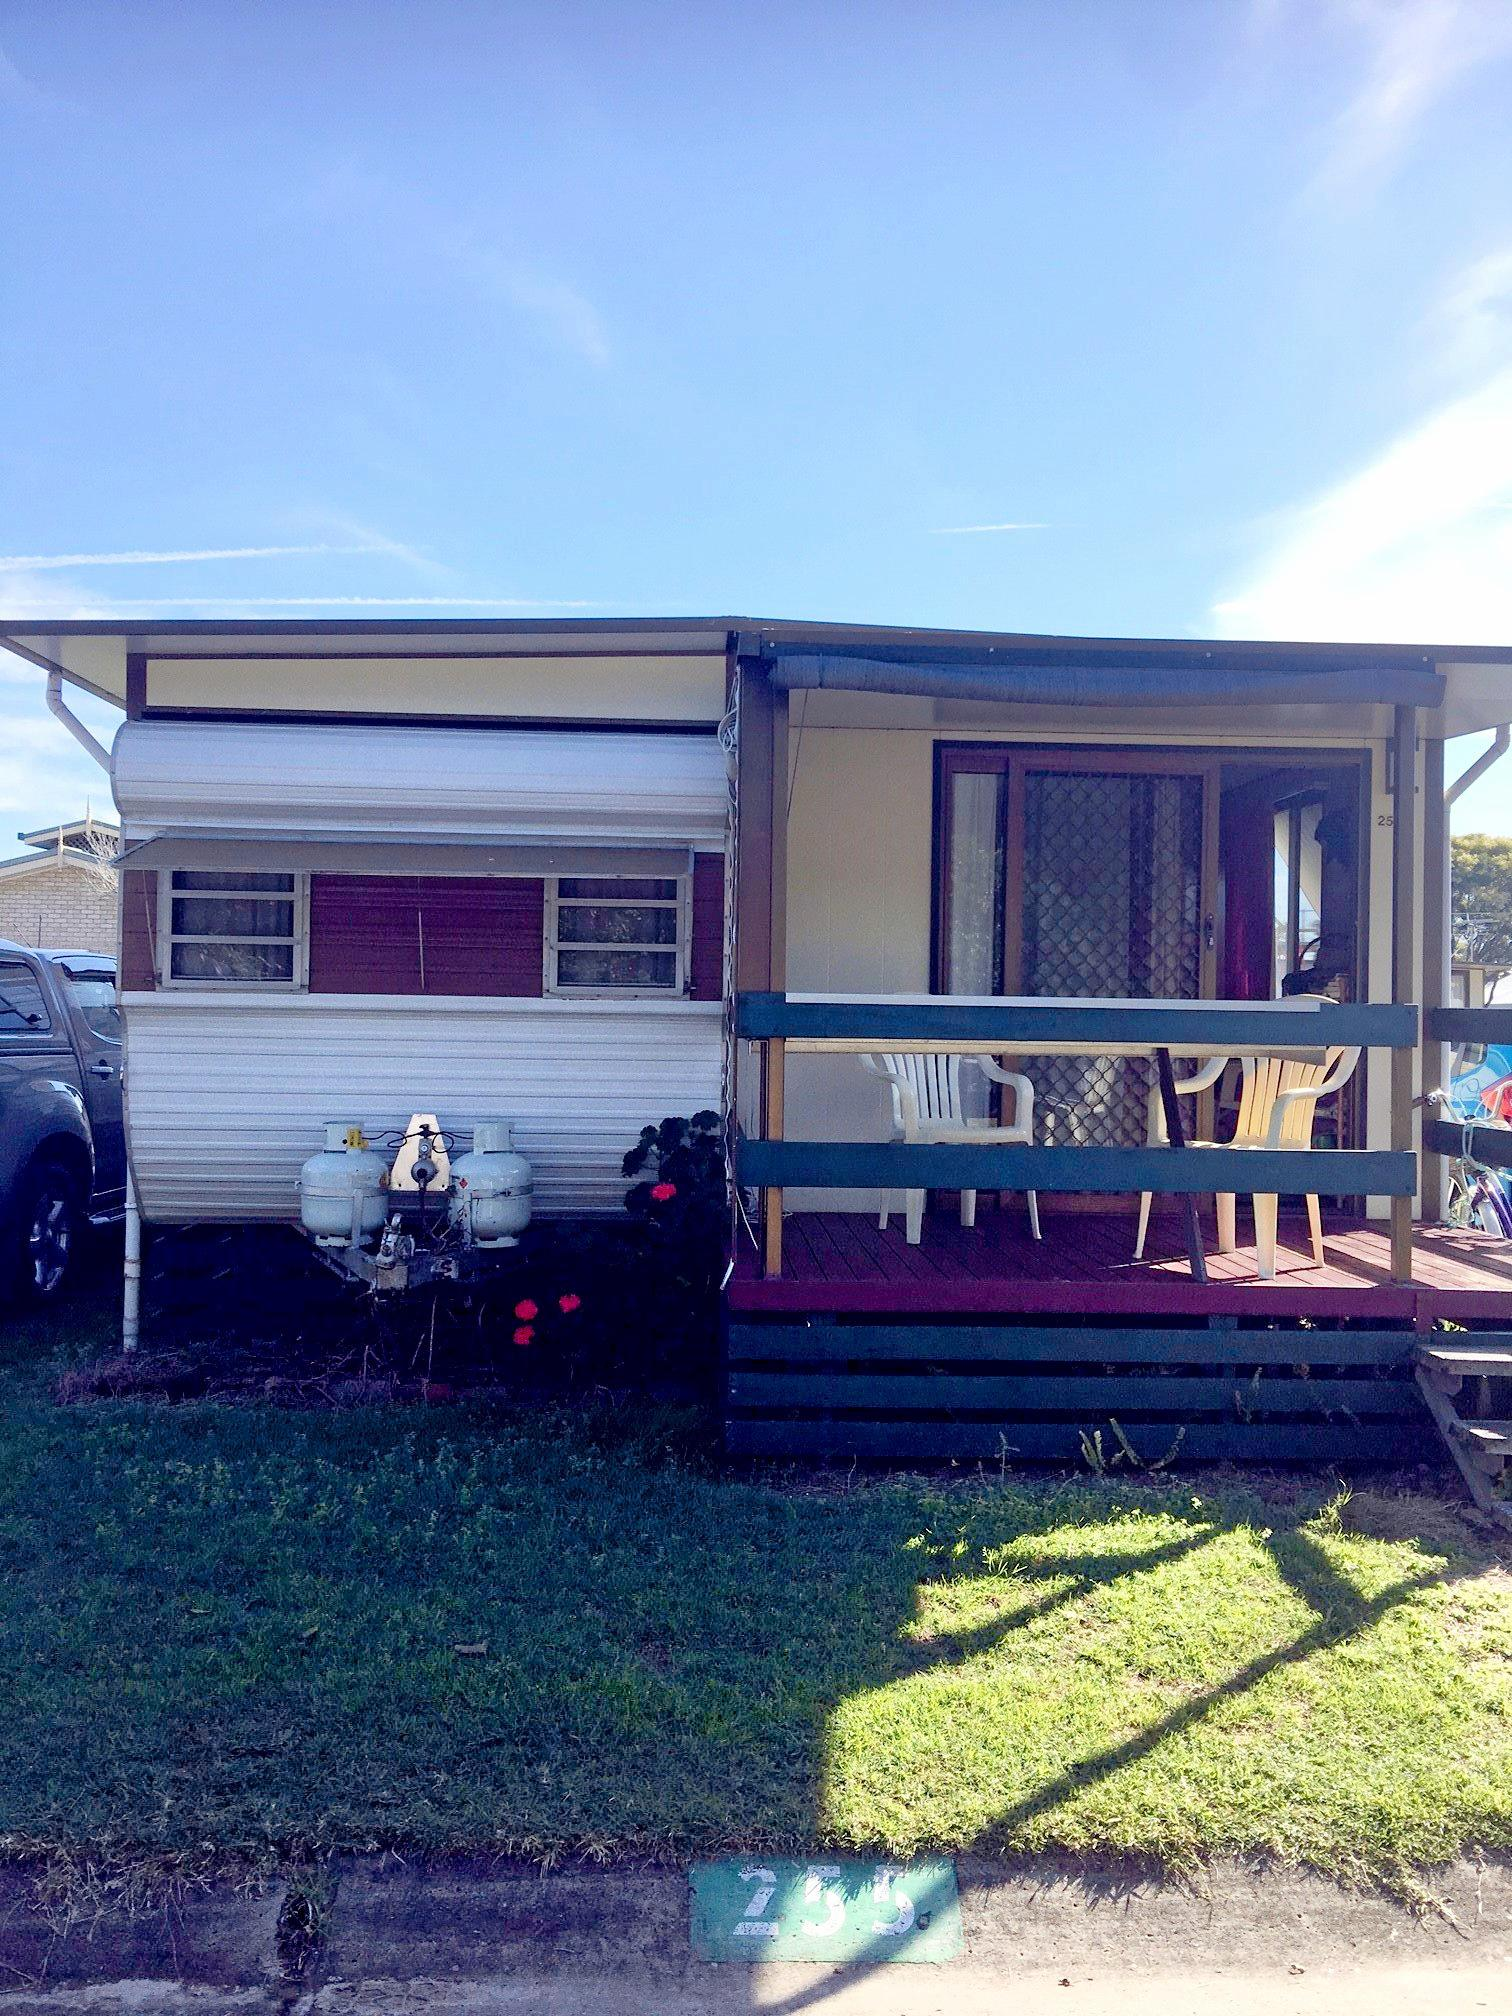 The Baker's caravan is one of the many vans at Evans Head Caravan Park that will either be sold off for $1000 or taken away by a tilt tray truck to move to scrap by September this year.